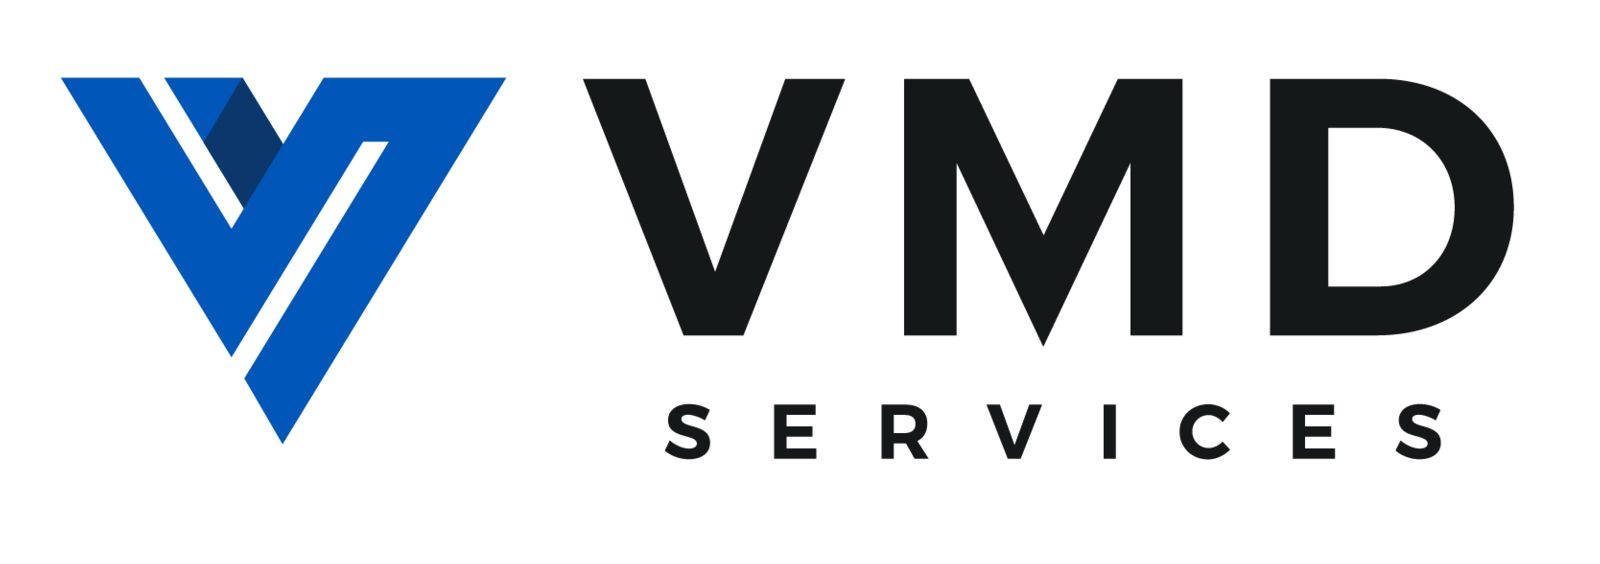 VMD Services